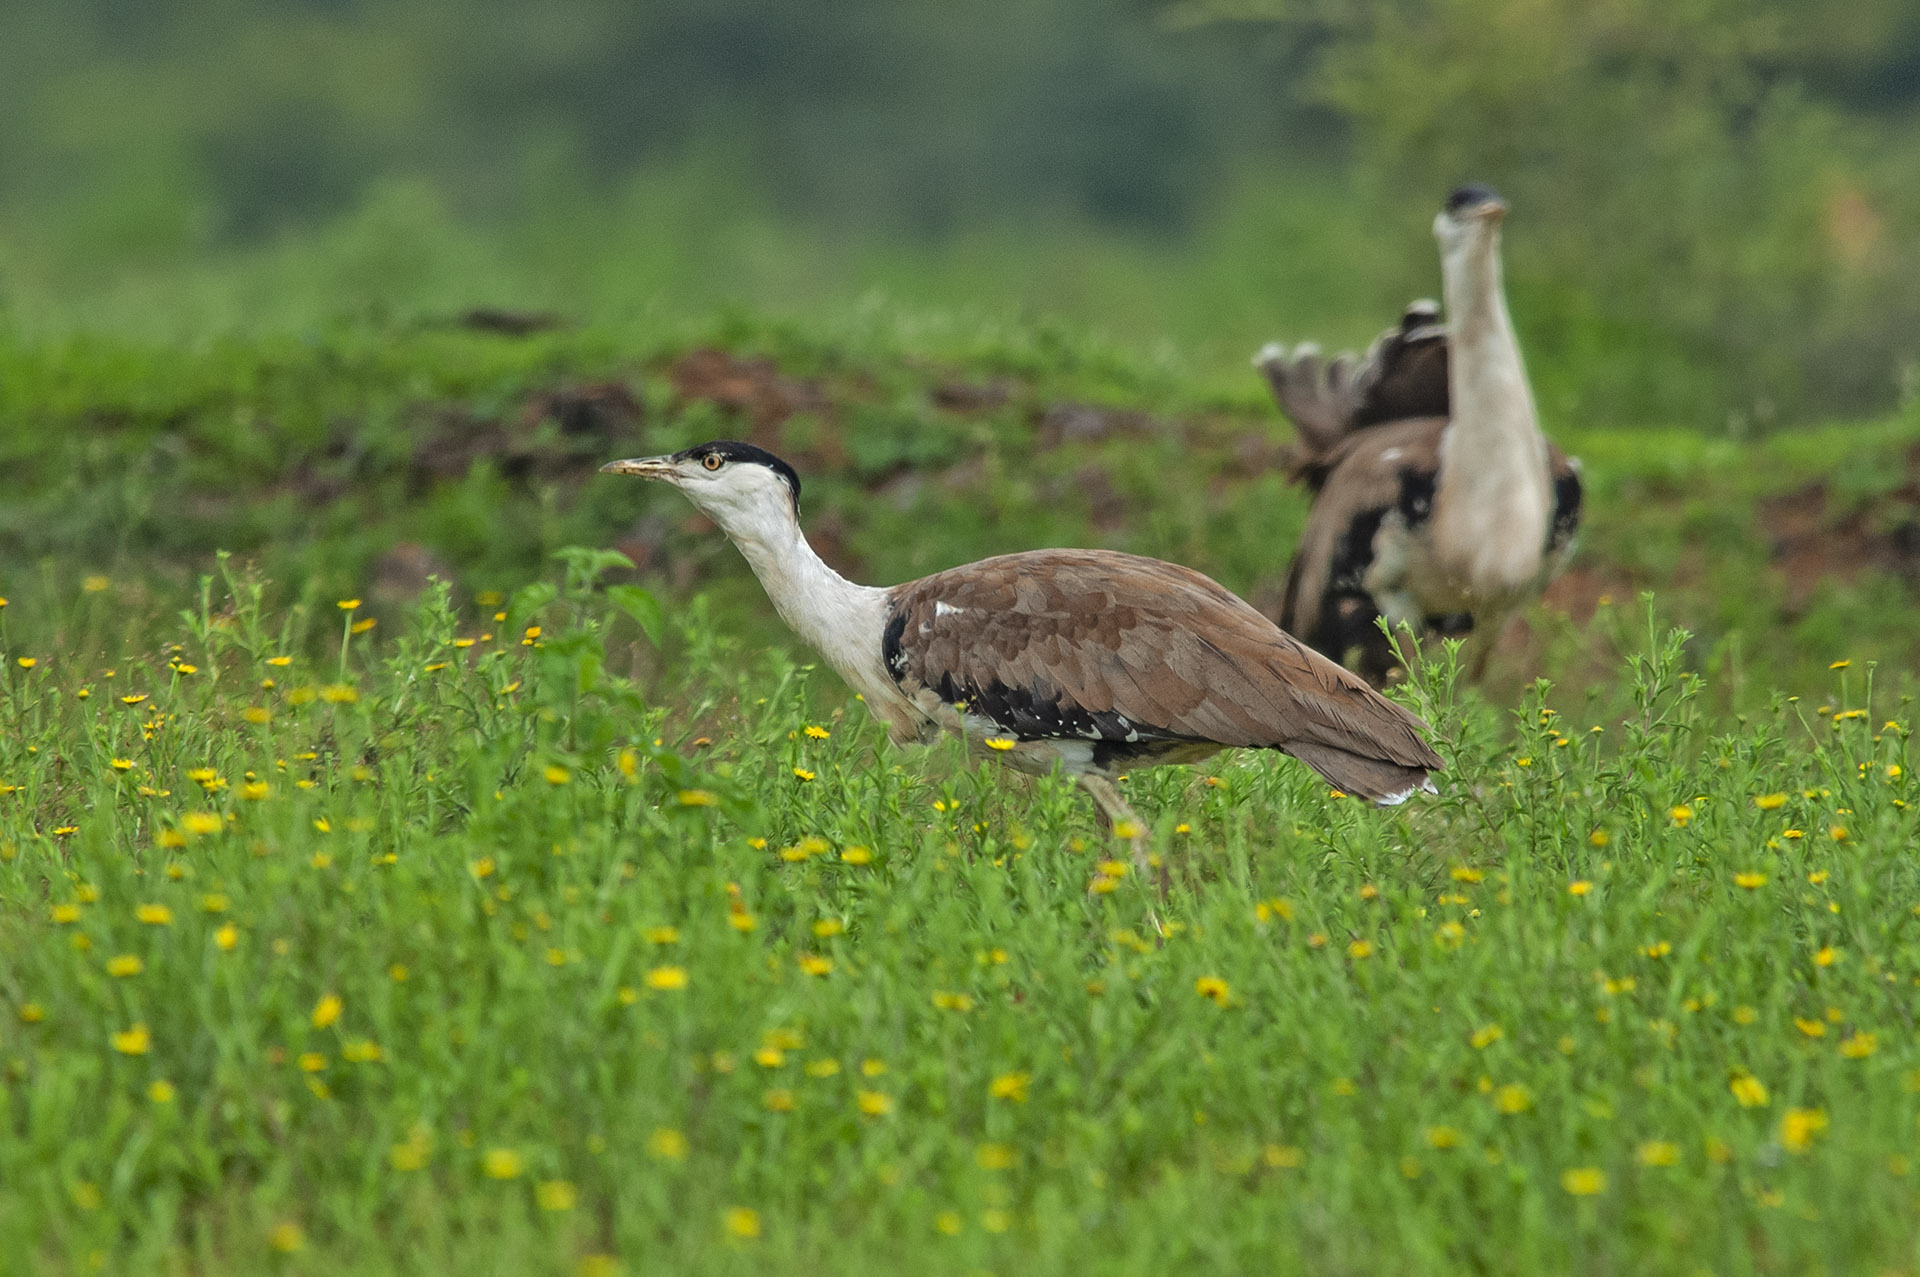 The summer and monsoon are mating seasons for great Indian bustards. Chicks are born around the monsoon, when insects, reptiles, and worms are in abundance and are easy food for the young ones. Photo: Dhritiman Mukherjee